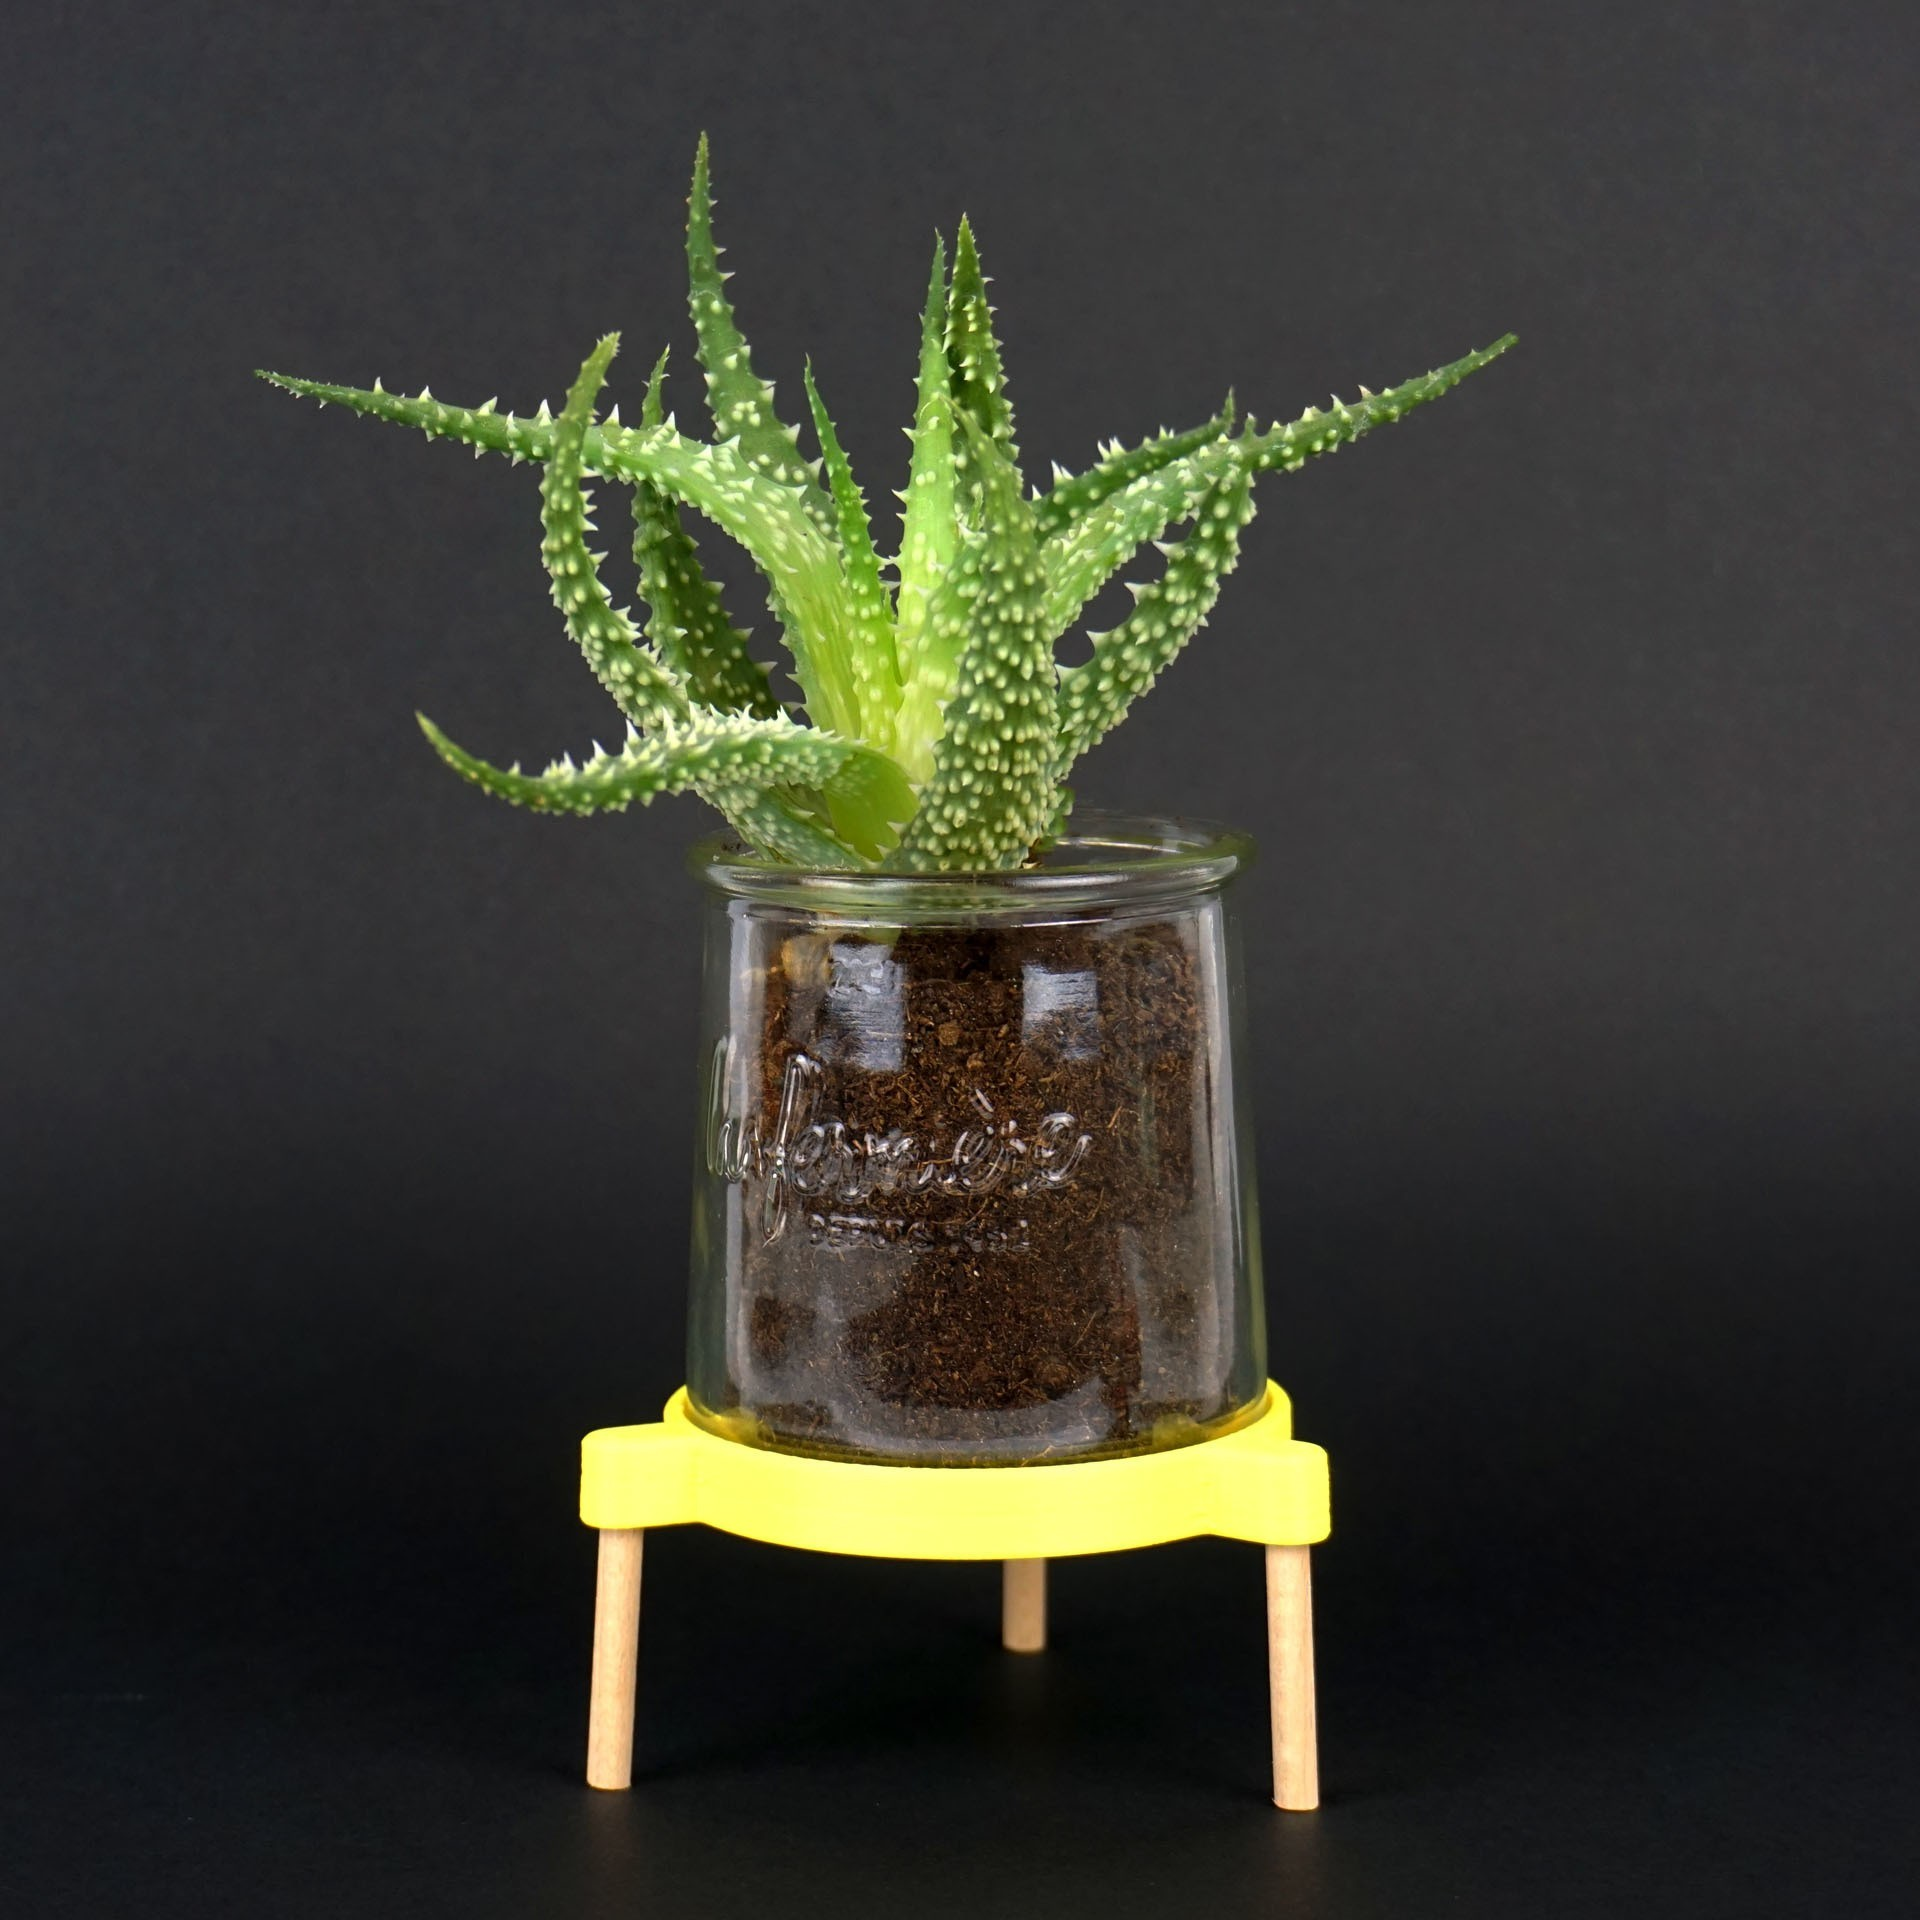 Shooting Pot coupelle - 2018 05 09 - 1.jpg Download STL file Tripod support for receiving a plant in a glass pot • 3D printable model, Jonathan-AtelierVOUS